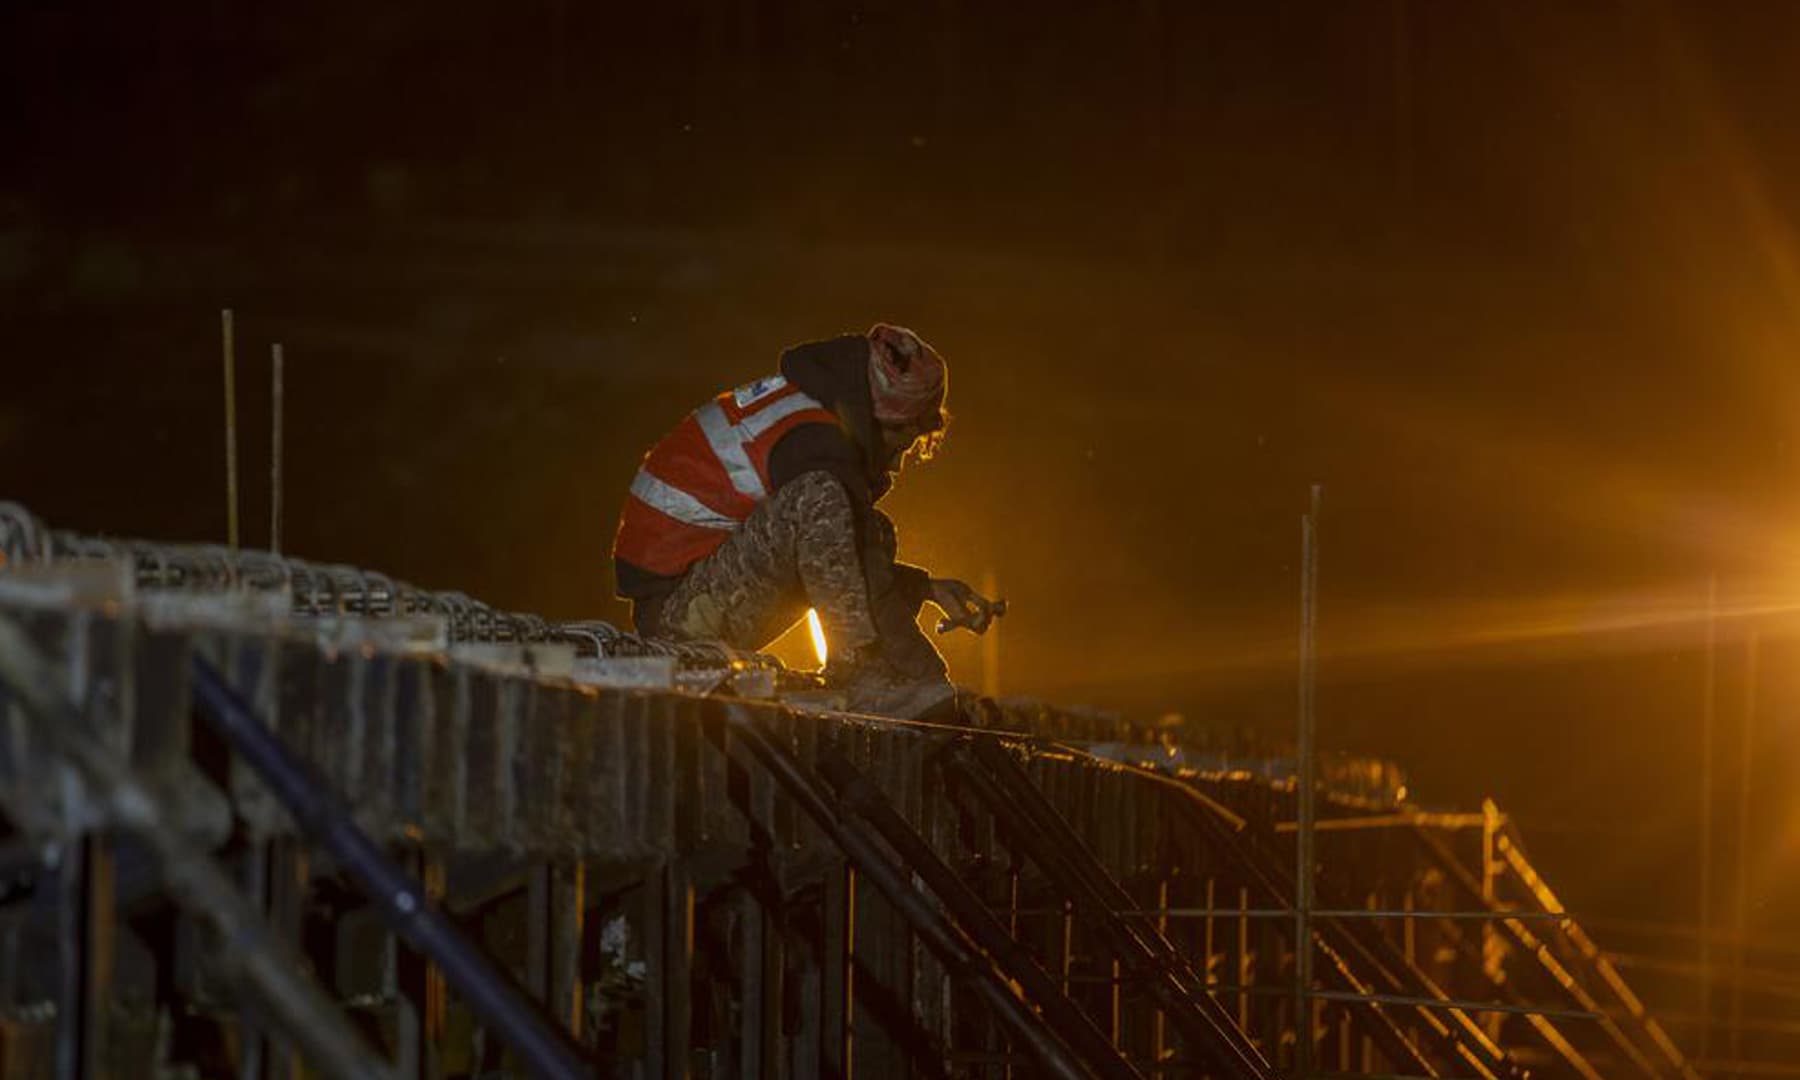 Indian workers employed by the Megha Engineering And Infrastructures Limited work on the construction of a bridge which will connect Sonamarg to Nilgrar Tunnel in Baltal area, northeast of Srinagar in Indian-occupied Kashmir. — AP